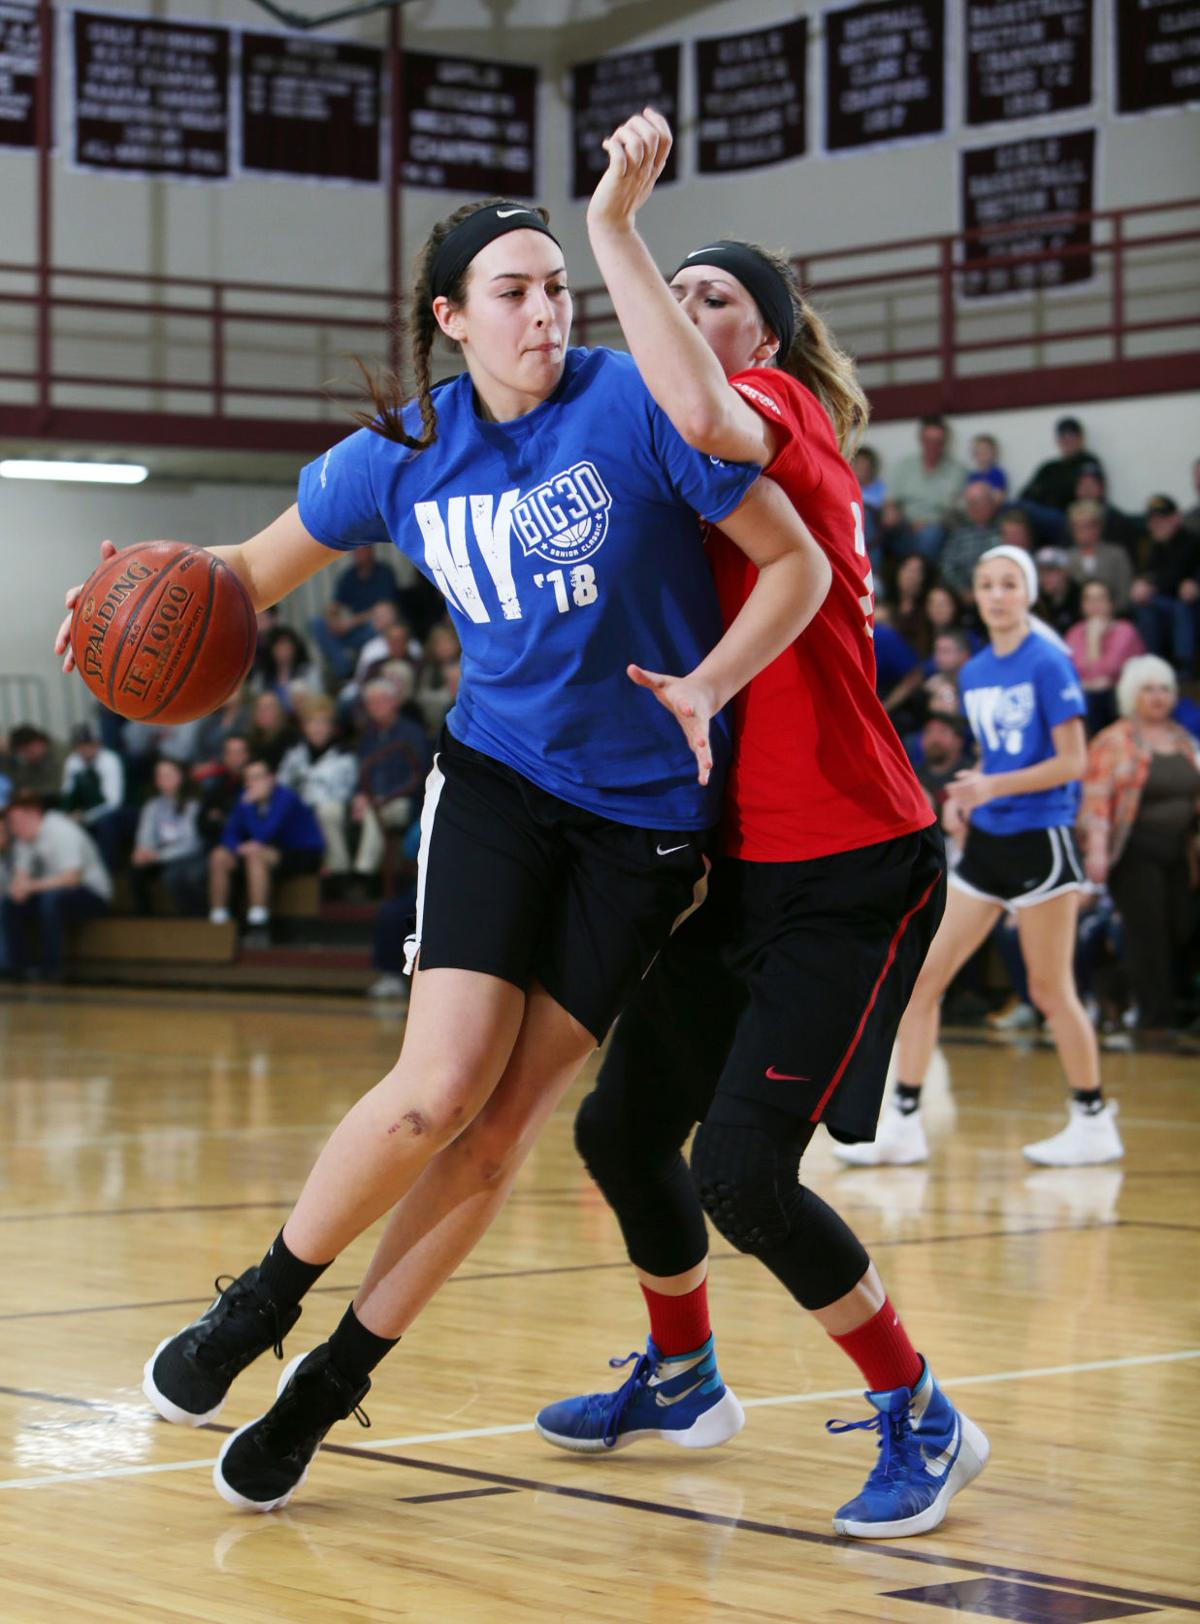 Davis leads NY girls past PA in Senior Classic thriller | Sports ...